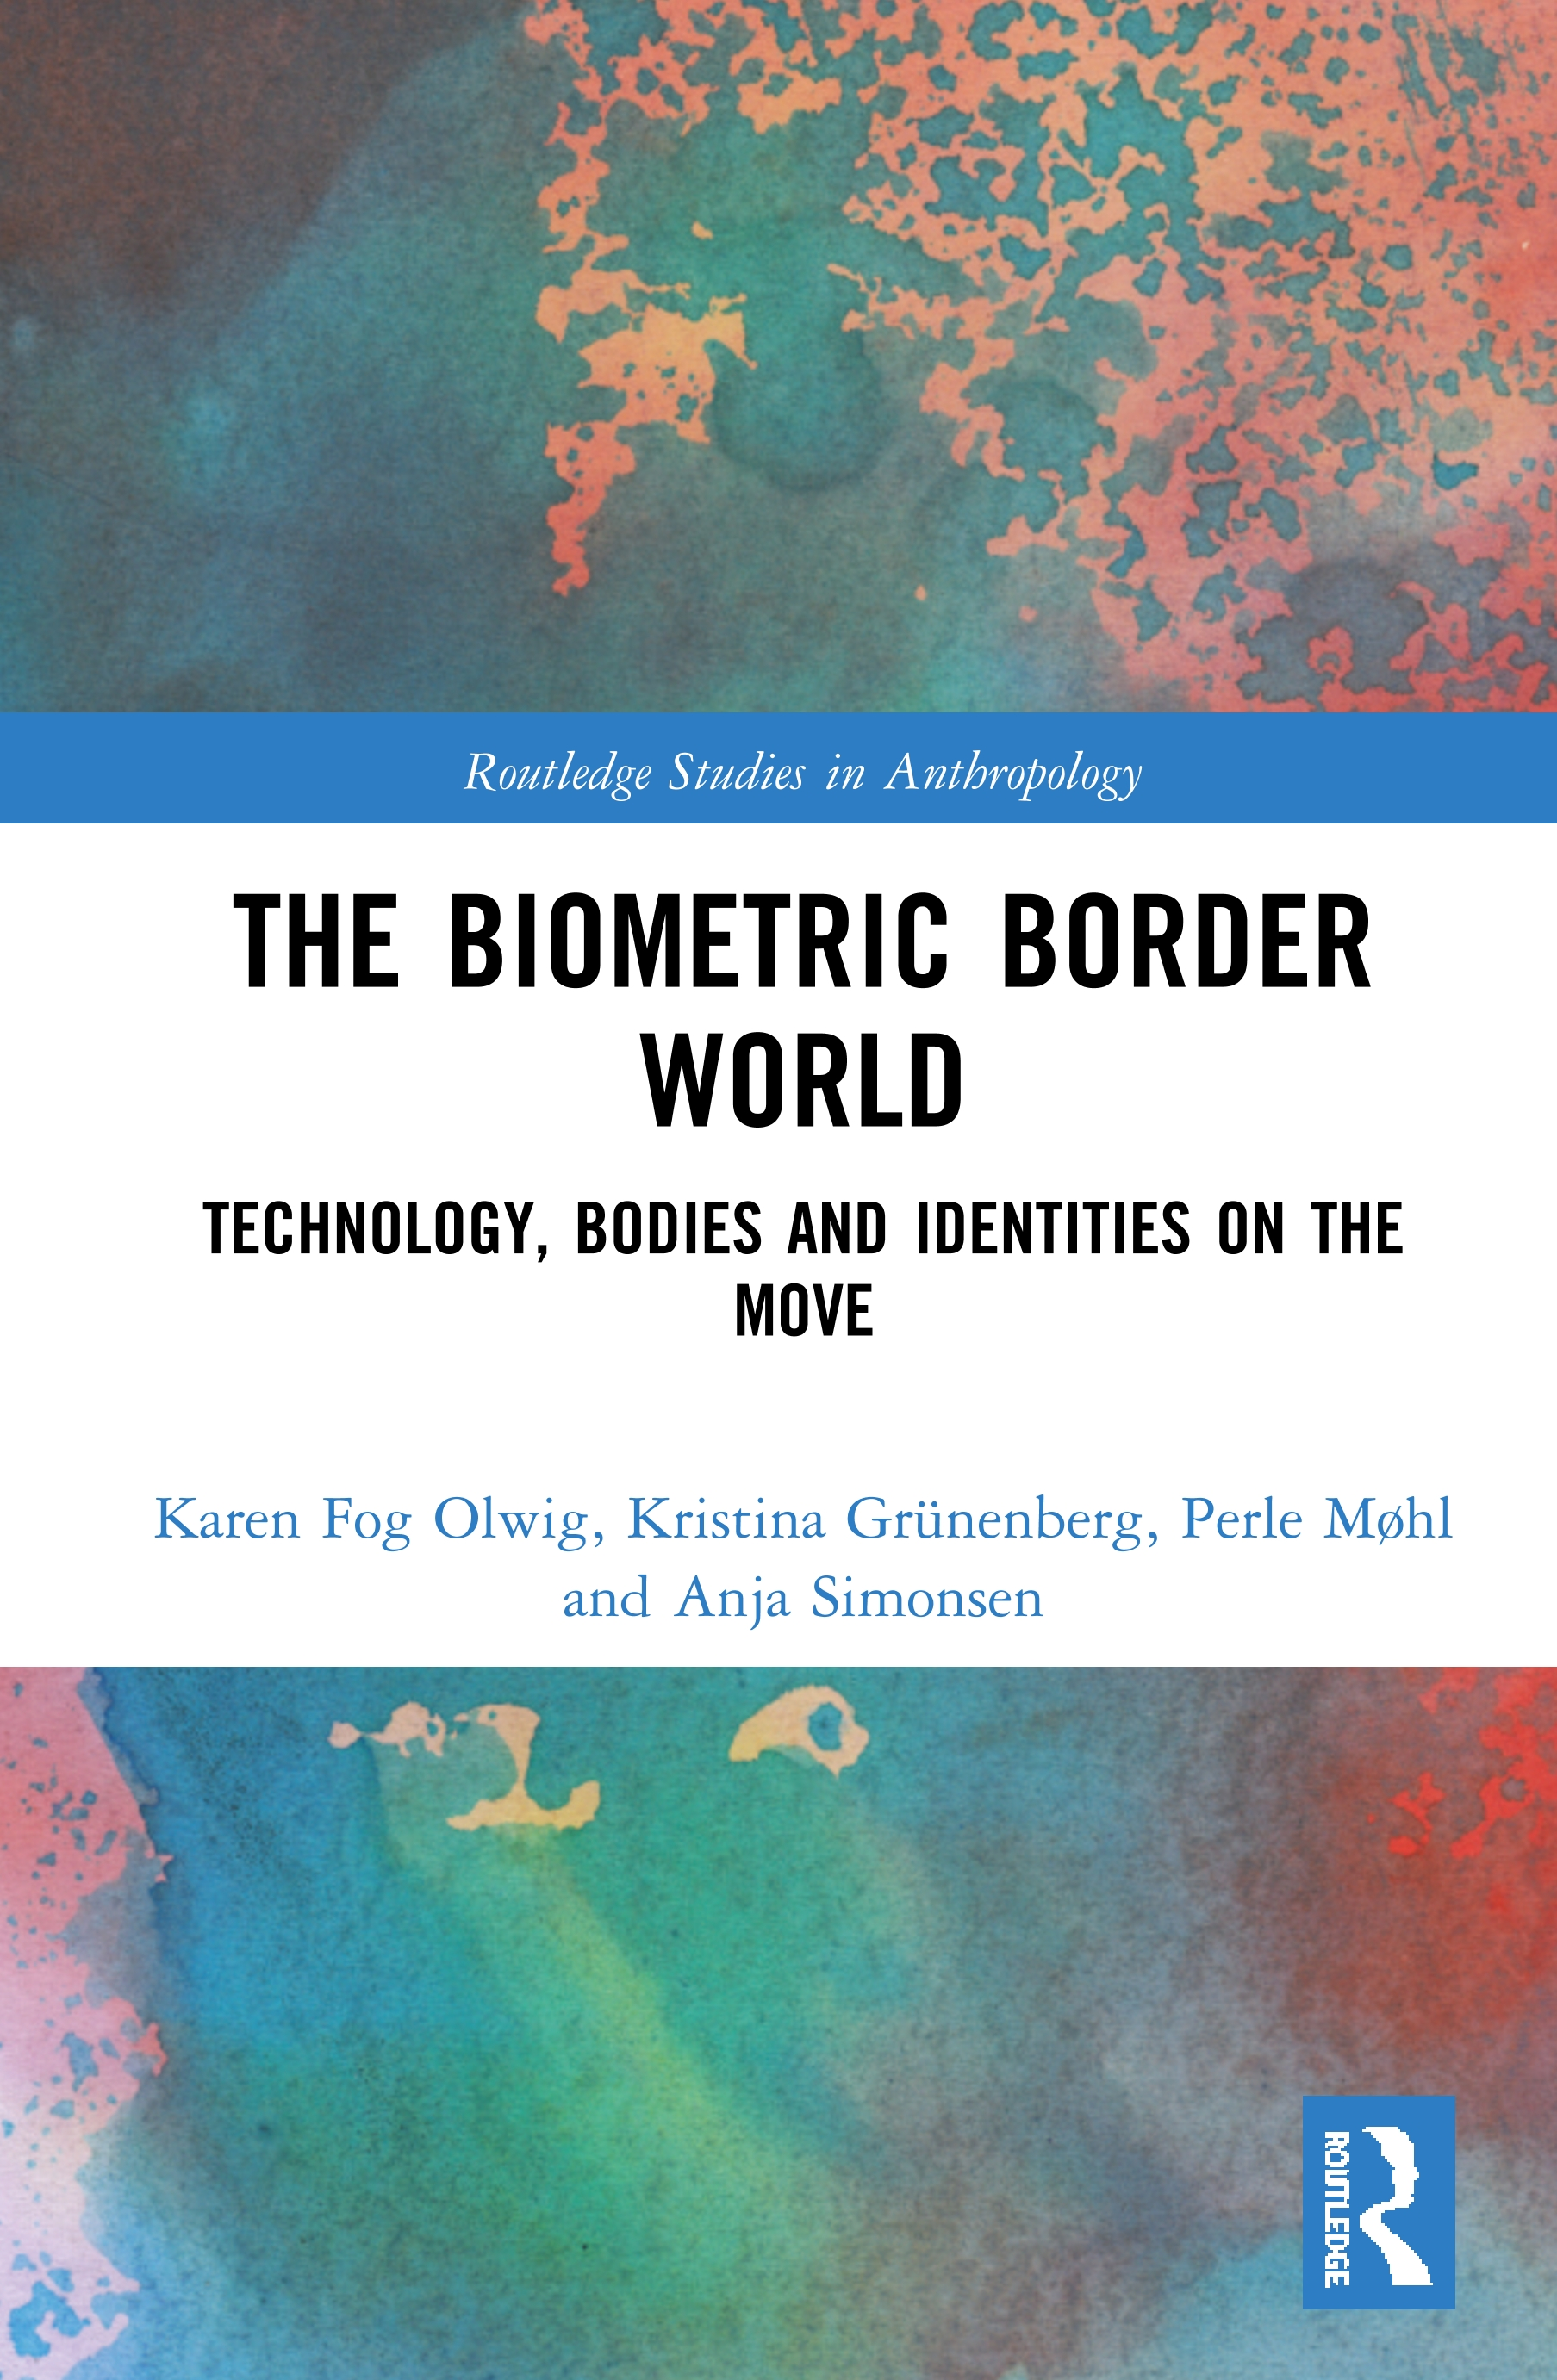 The Biometric Border World: Technology, Bodies and Identities on the Move book cover